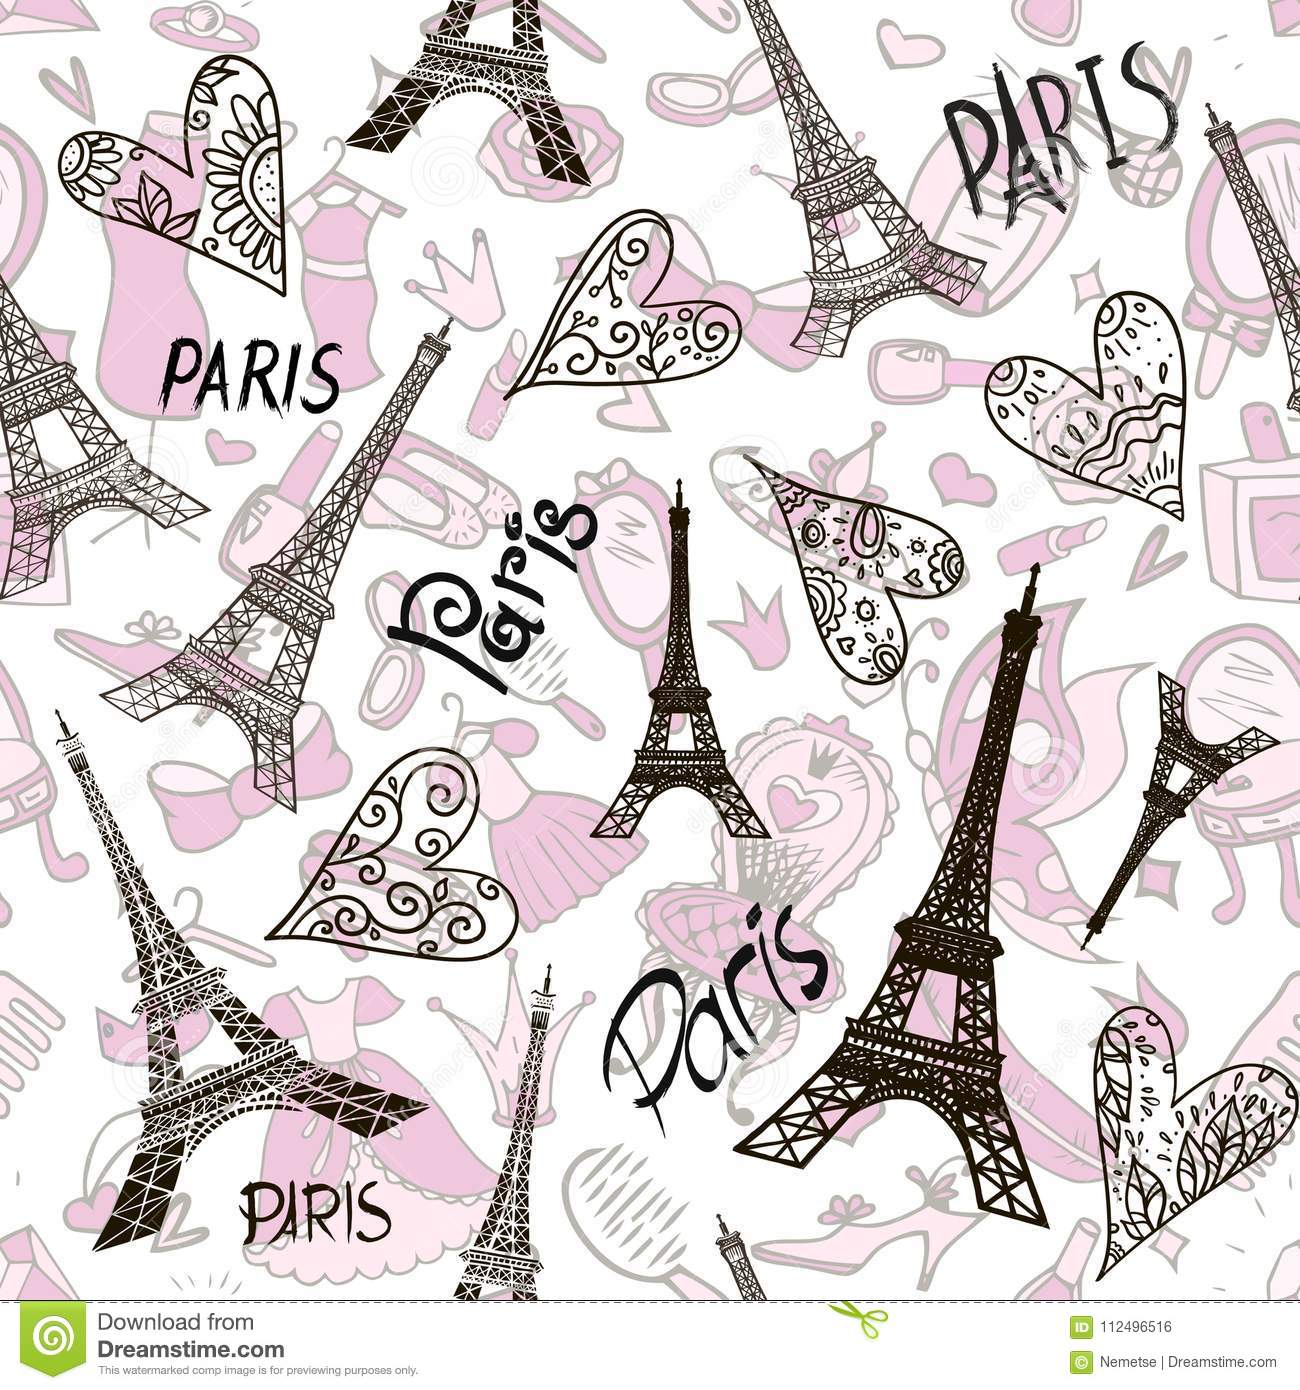 Romantic Seamless Eiffel Tower Paris Background Stock Vector Illustration Of Cute Eifel 112496516